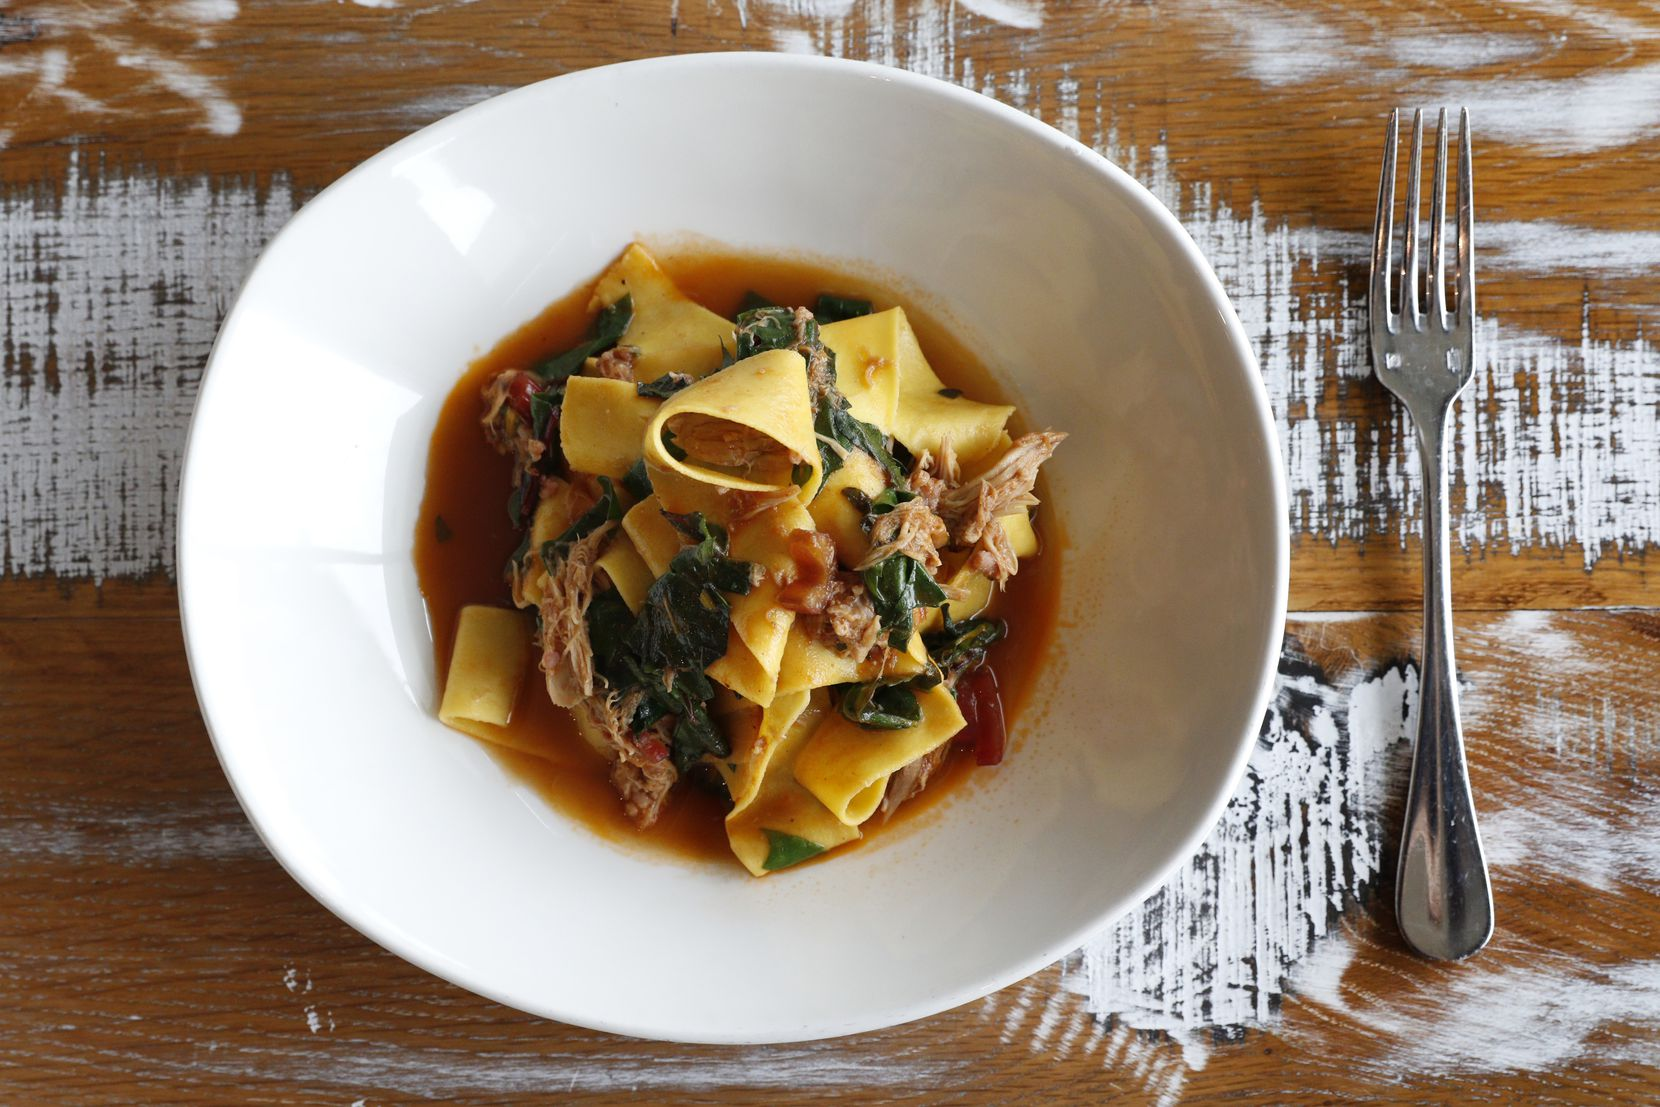 The husband and wife team at Gemma have a winner with their pappardelle with braised rabbit.